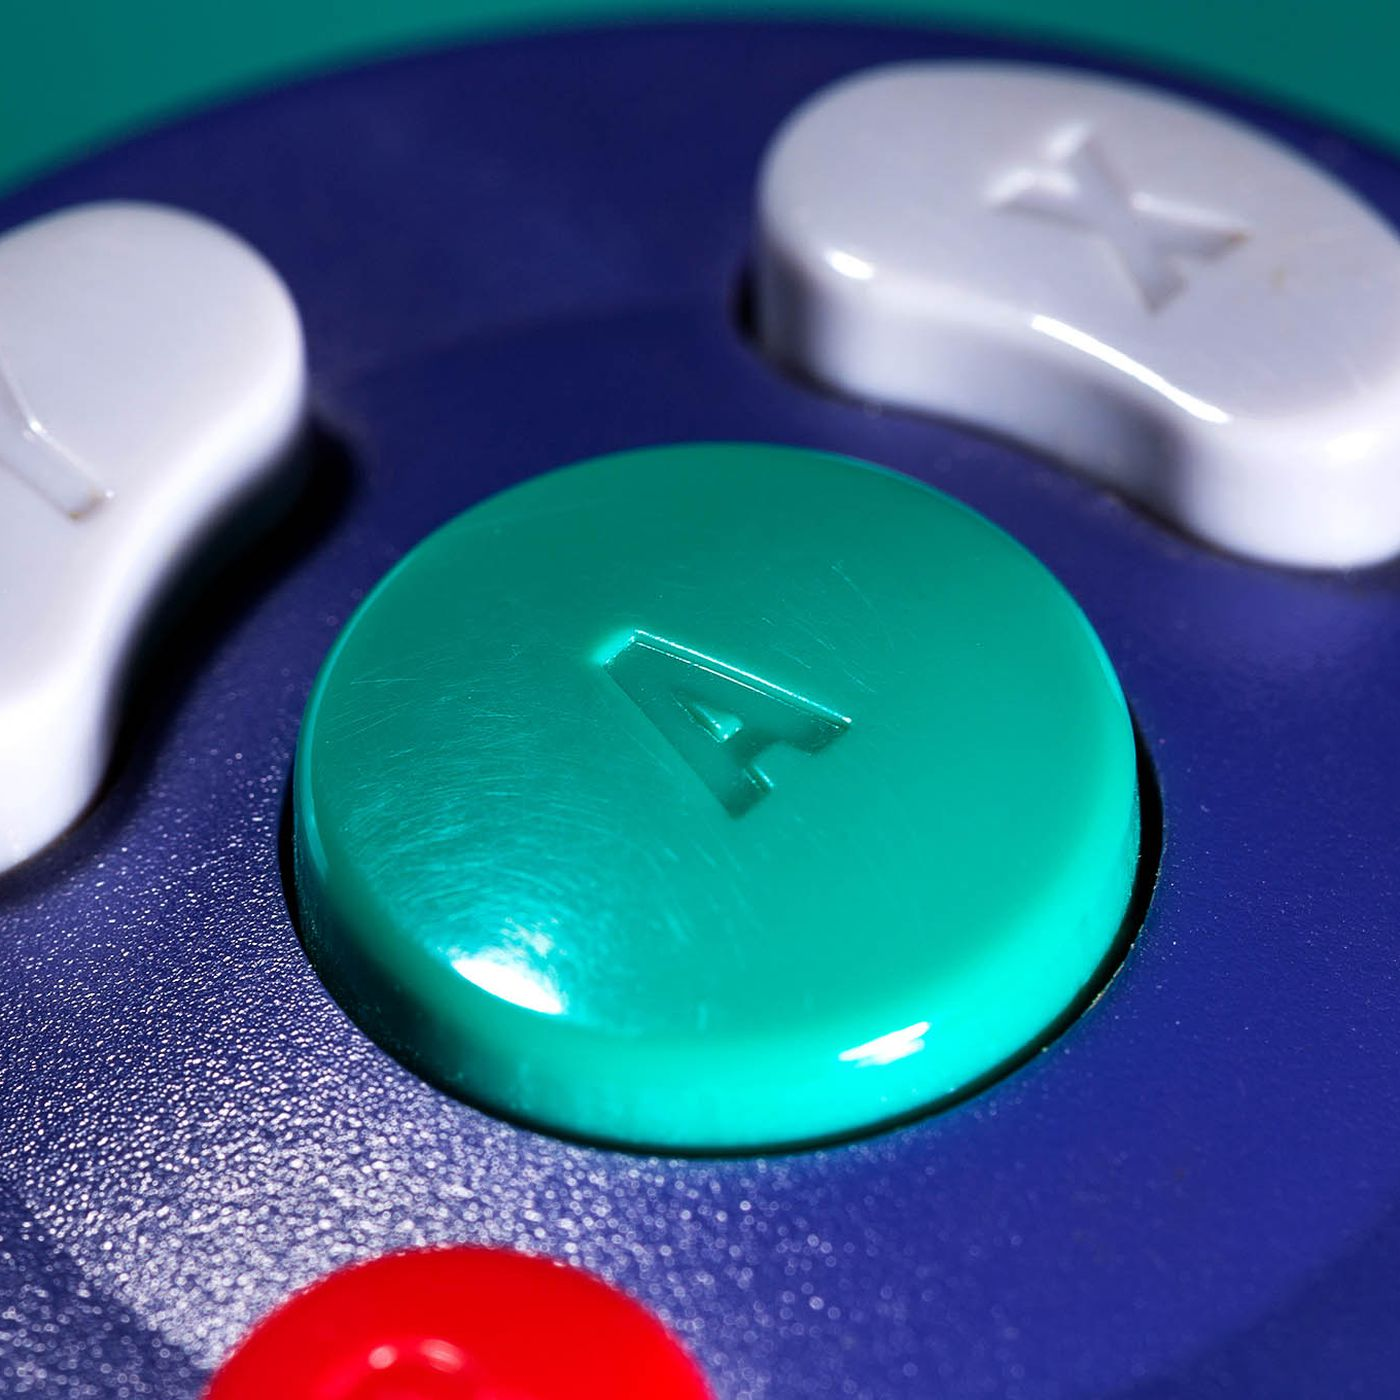 The GameCube controller's A button subtly taught us how to play ...